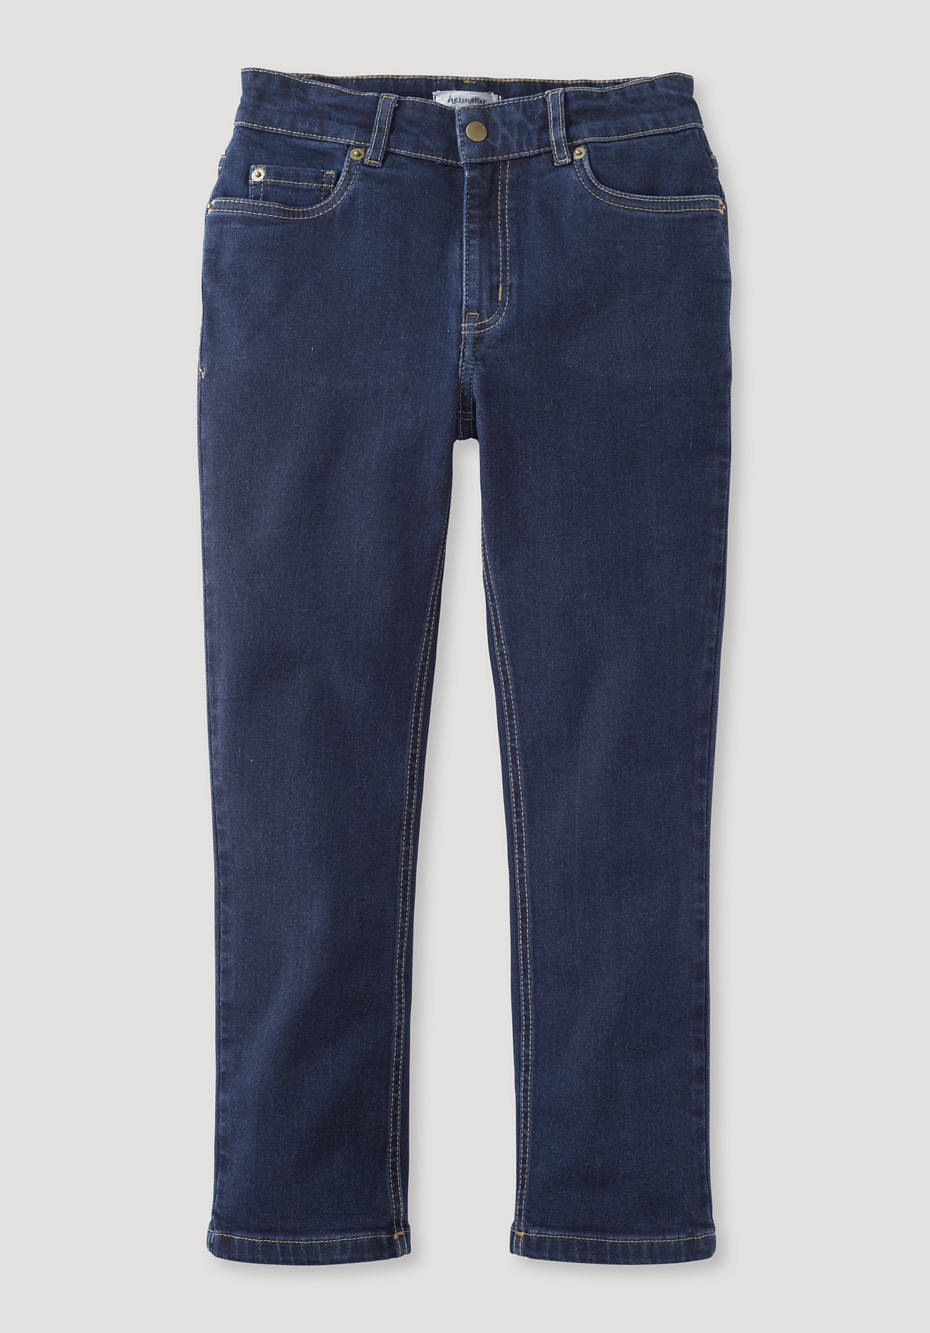 5-pocket jeans bed recycling made of organic cotton